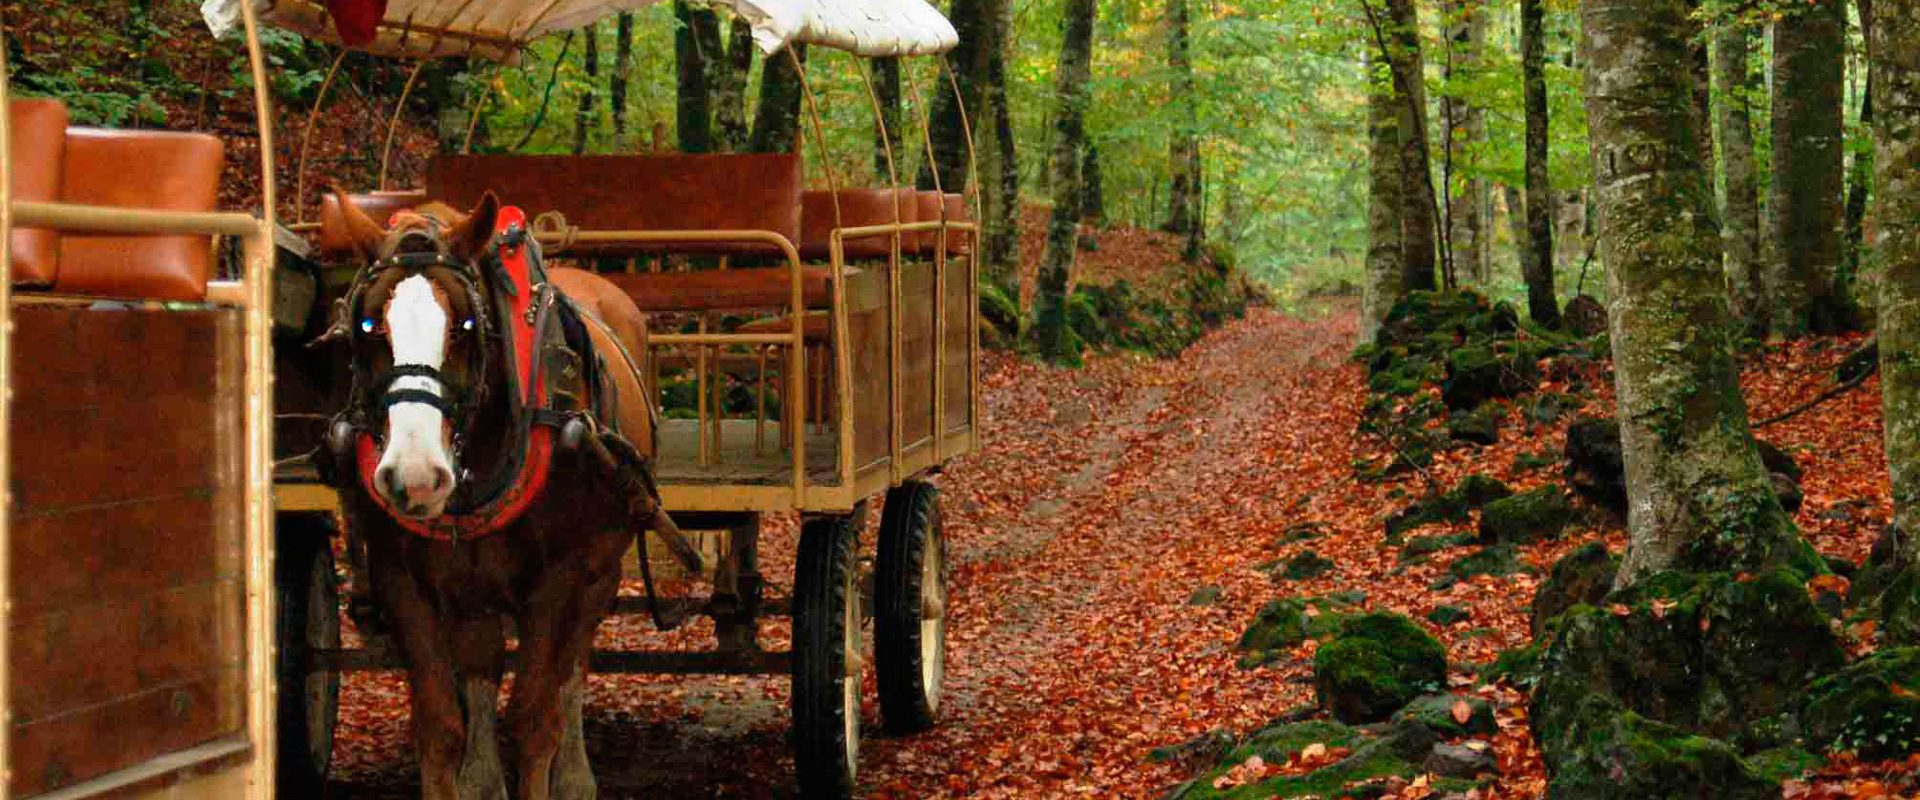 Stay with us and visit La Fageda d'en Jordà (a beech forest) on a carriage